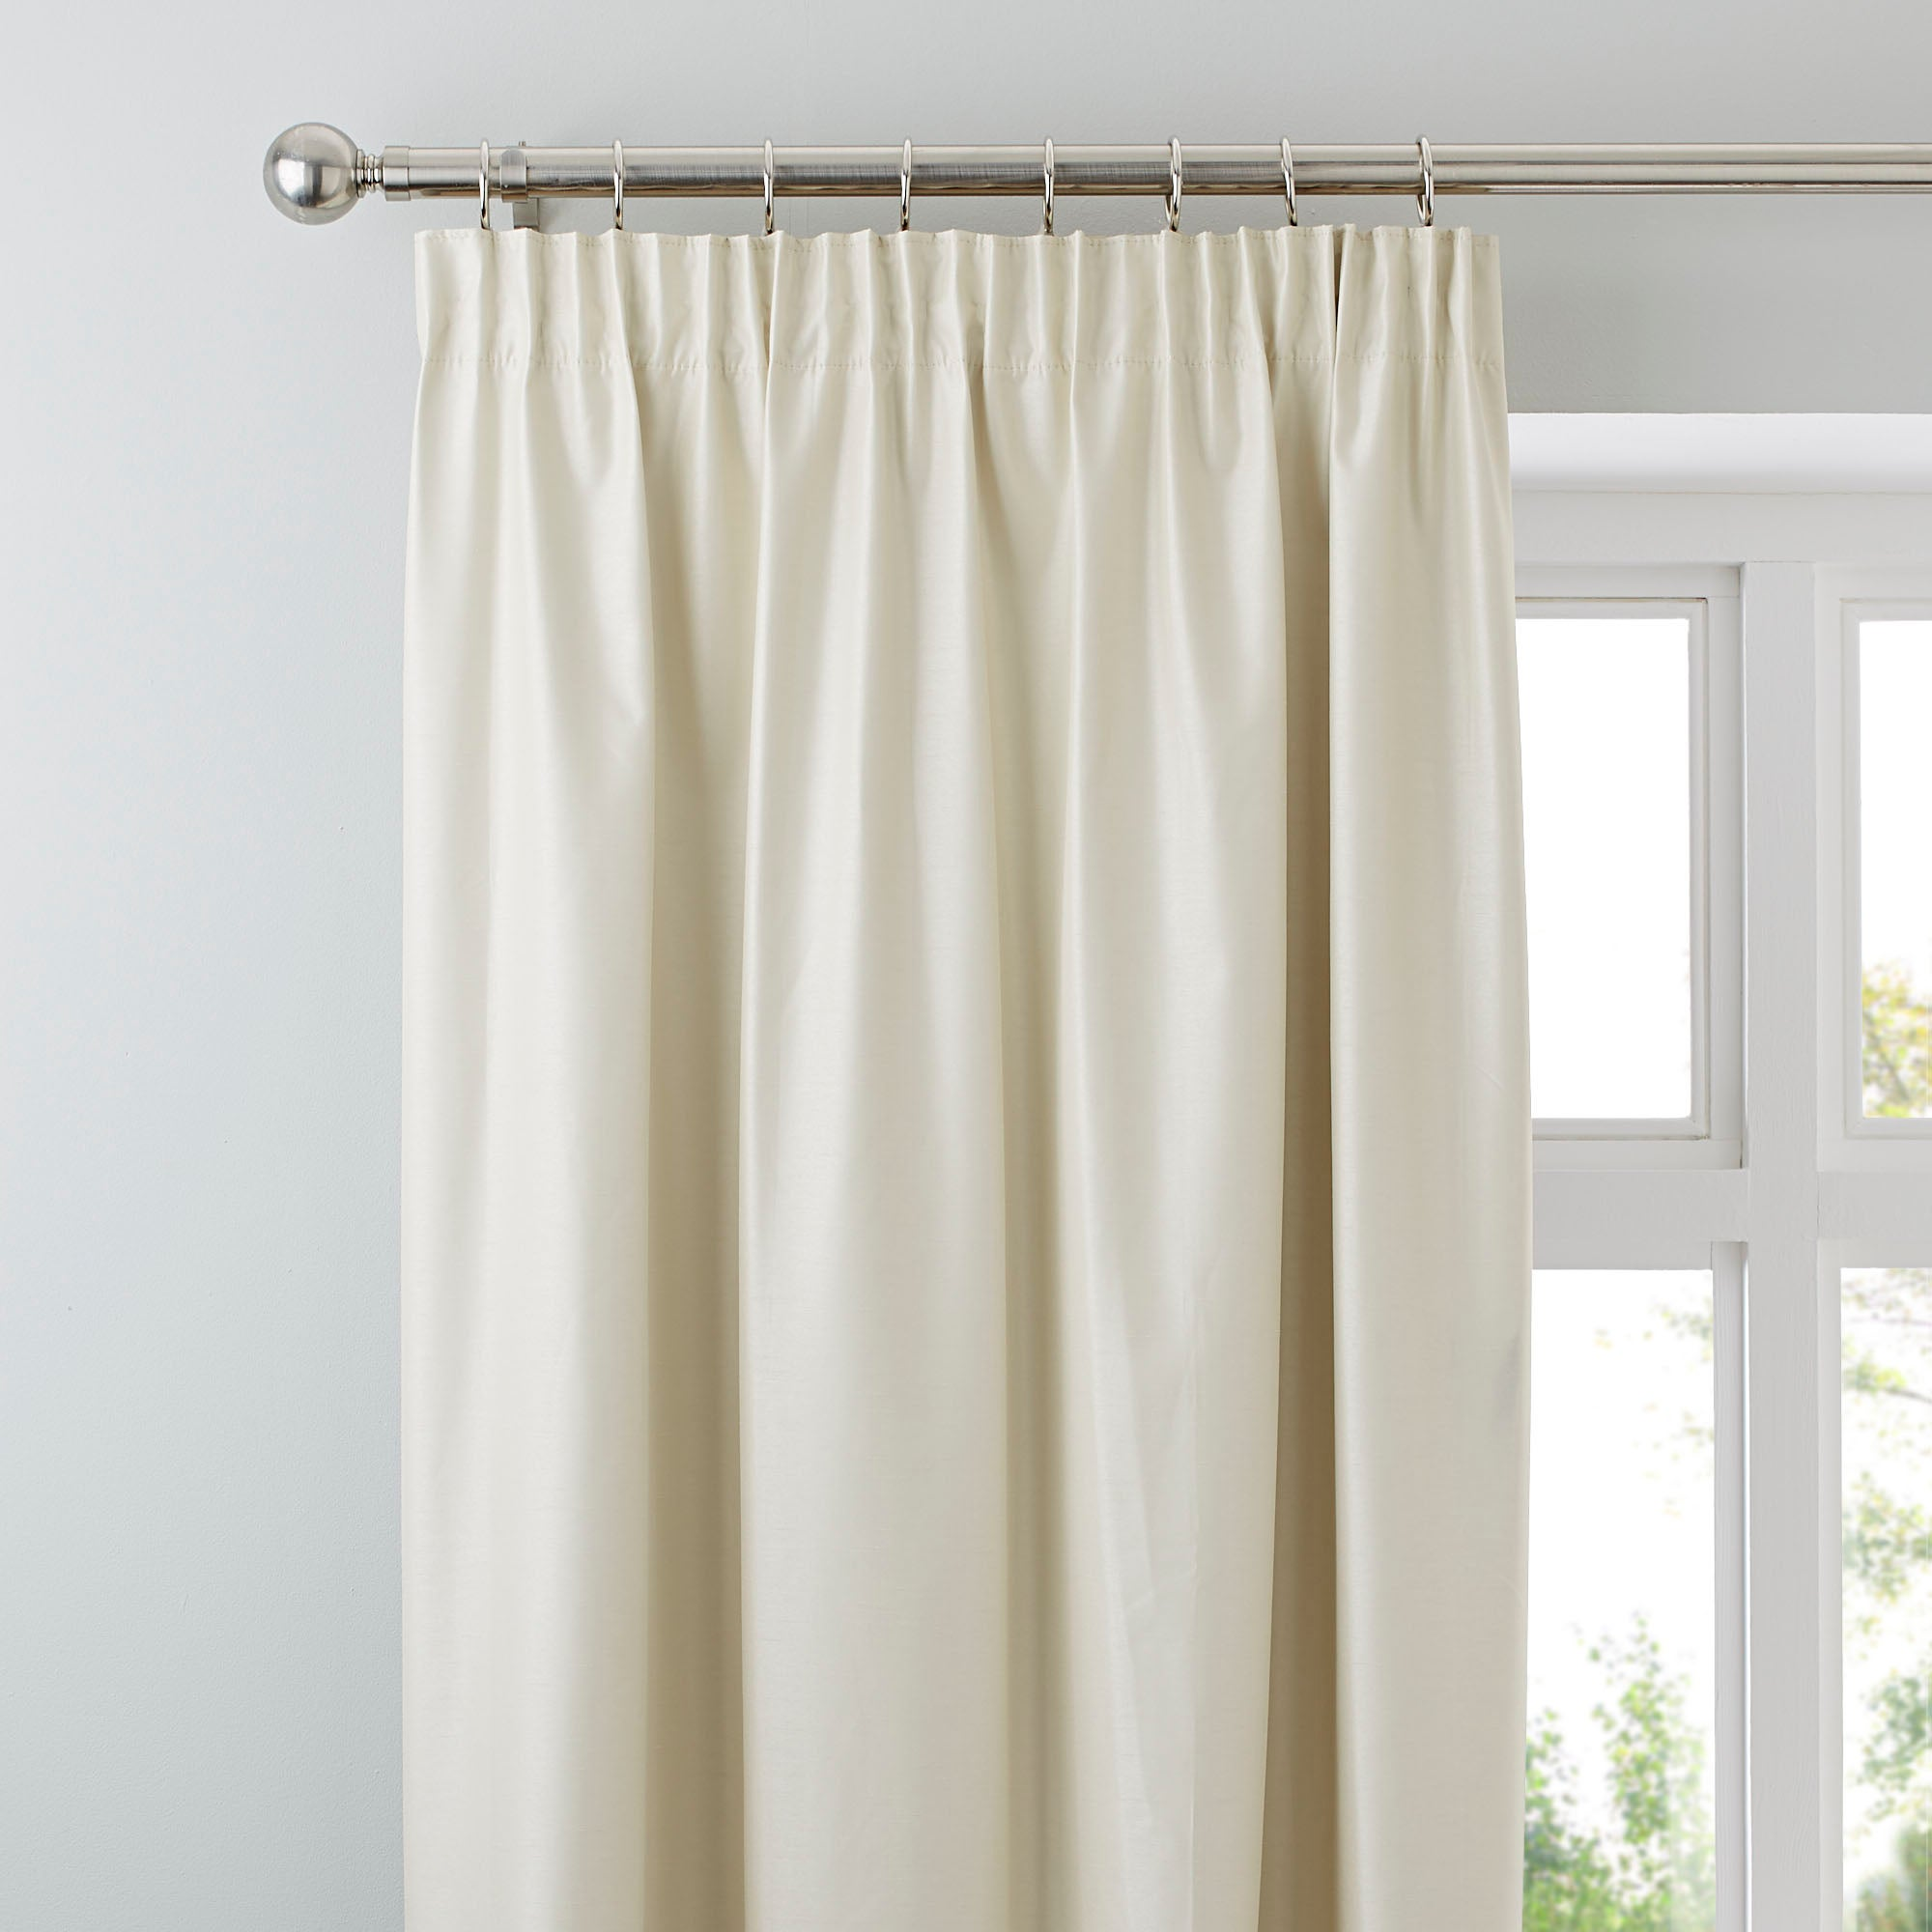 Natural Nova Blackout Pencil Pleat Curtains